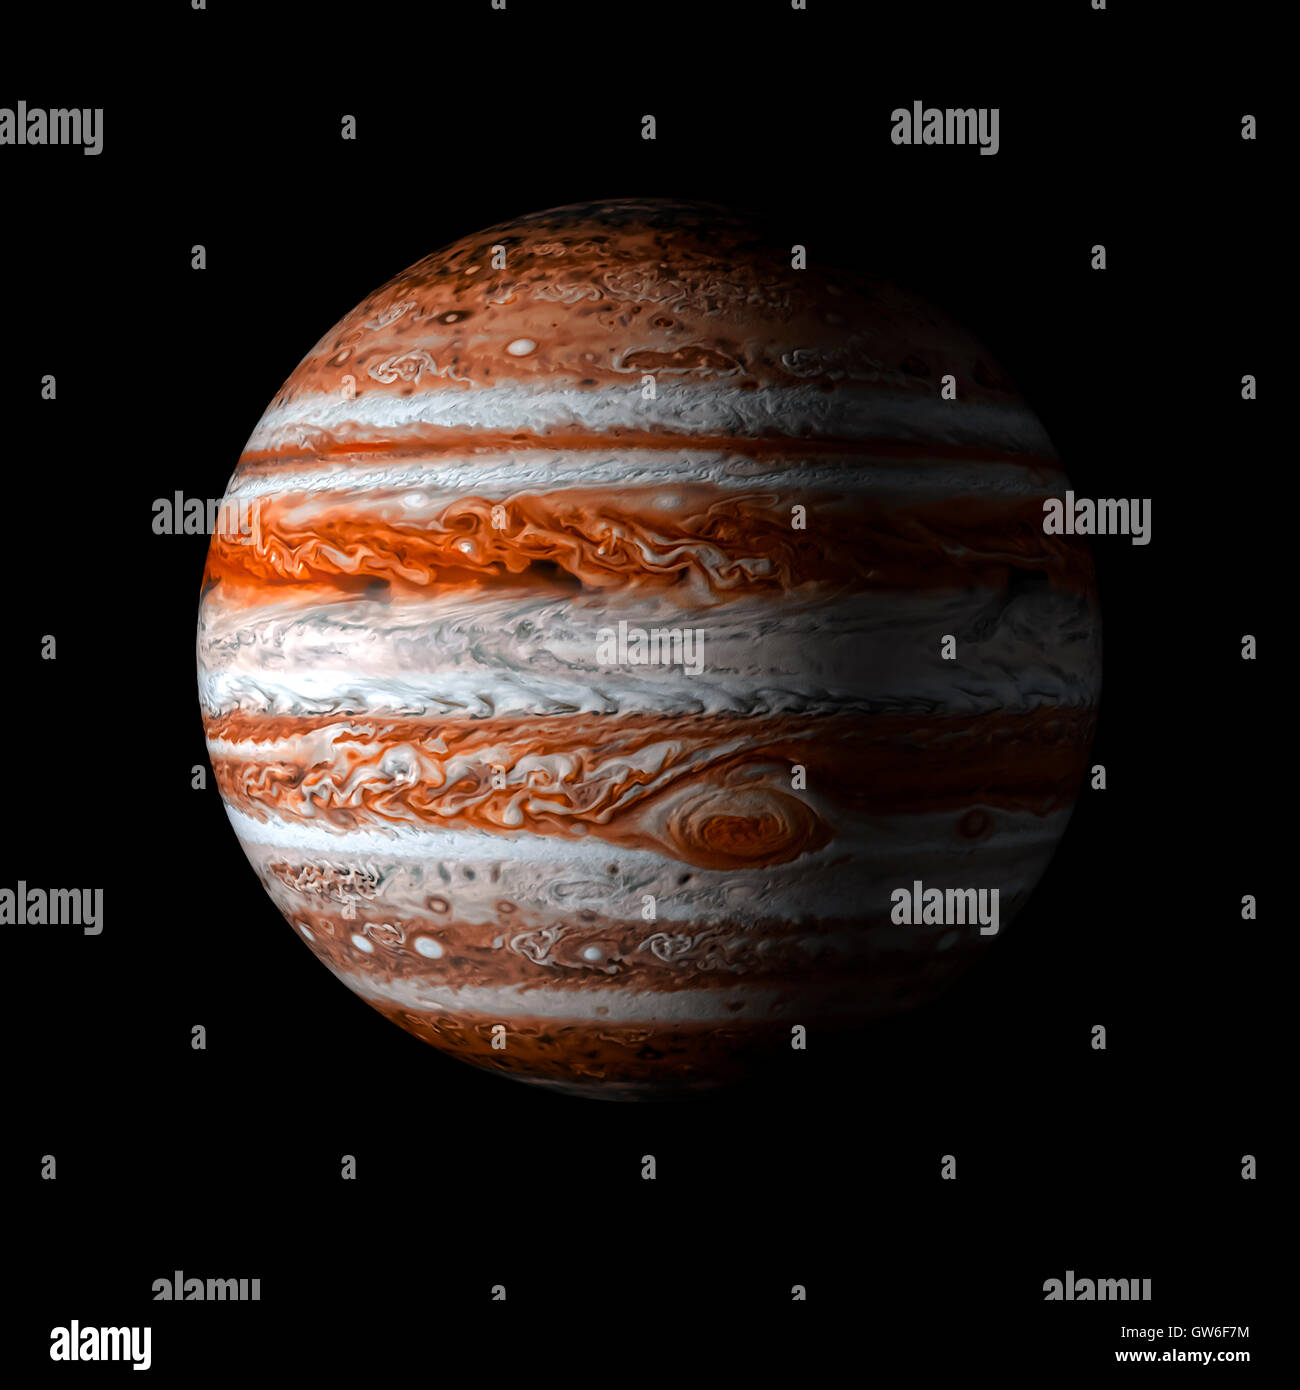 Solar system planet Jupiter on black background 3d rendering. Elements of this image furnished by NASA - Stock Image